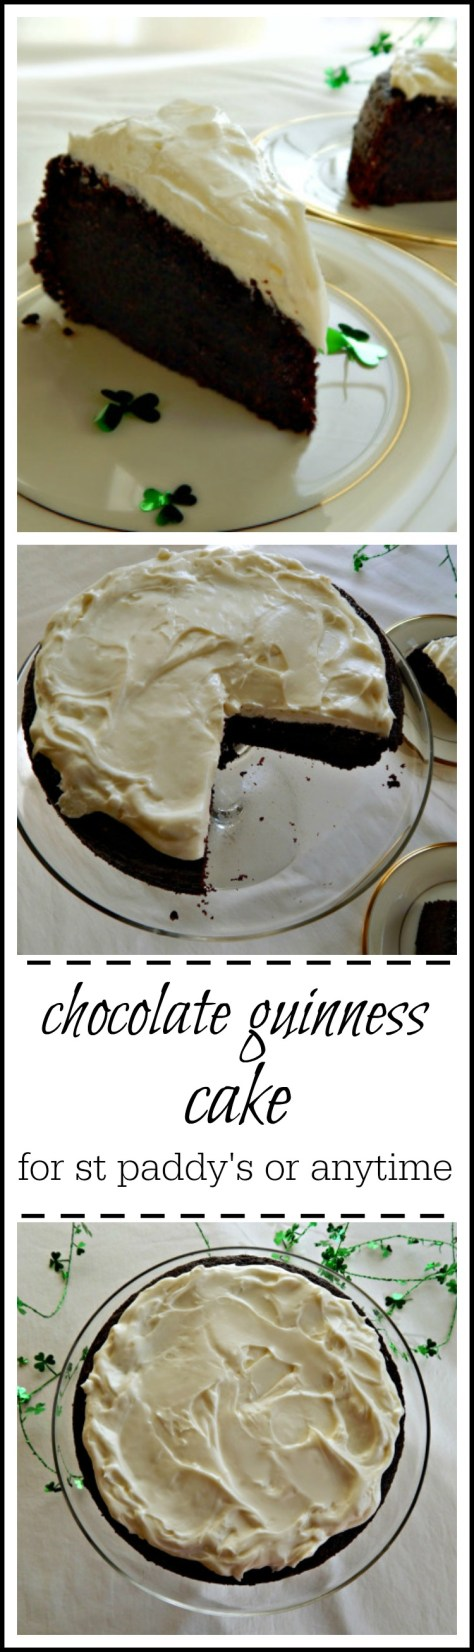 Easy Guinness Chocolate Cake Adapted From Nigella Lawson